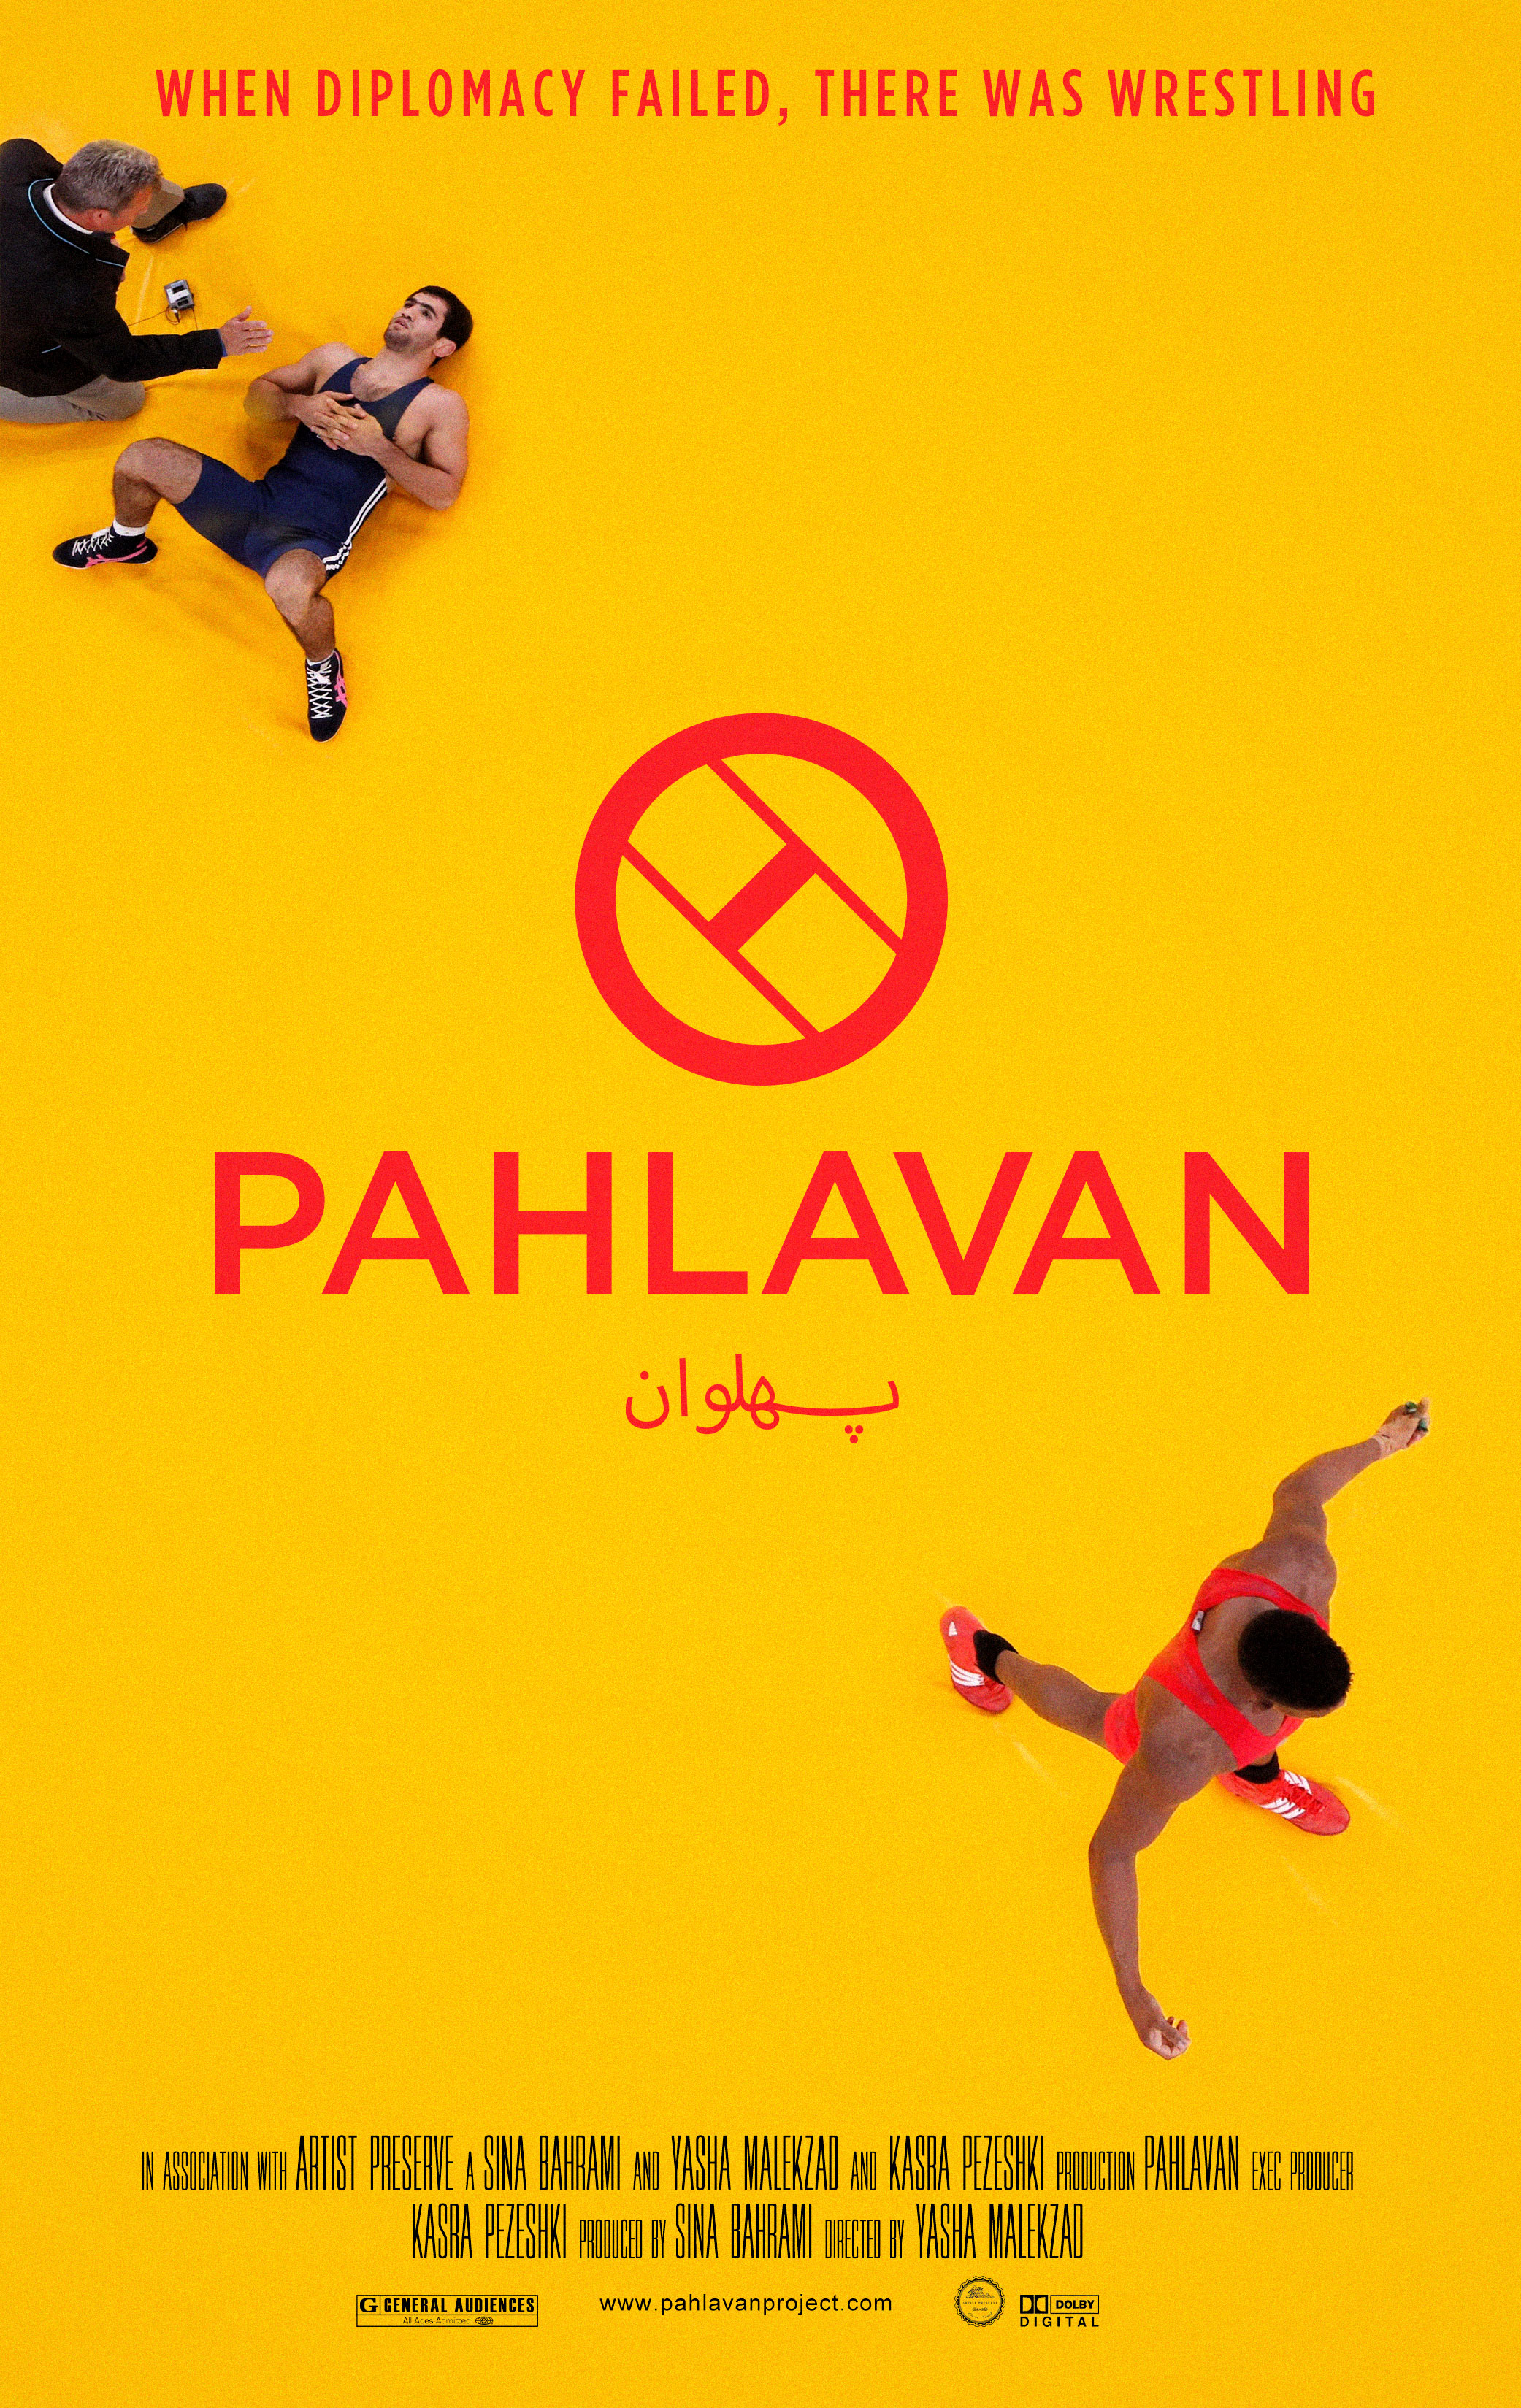 Pahlavan Production Poster